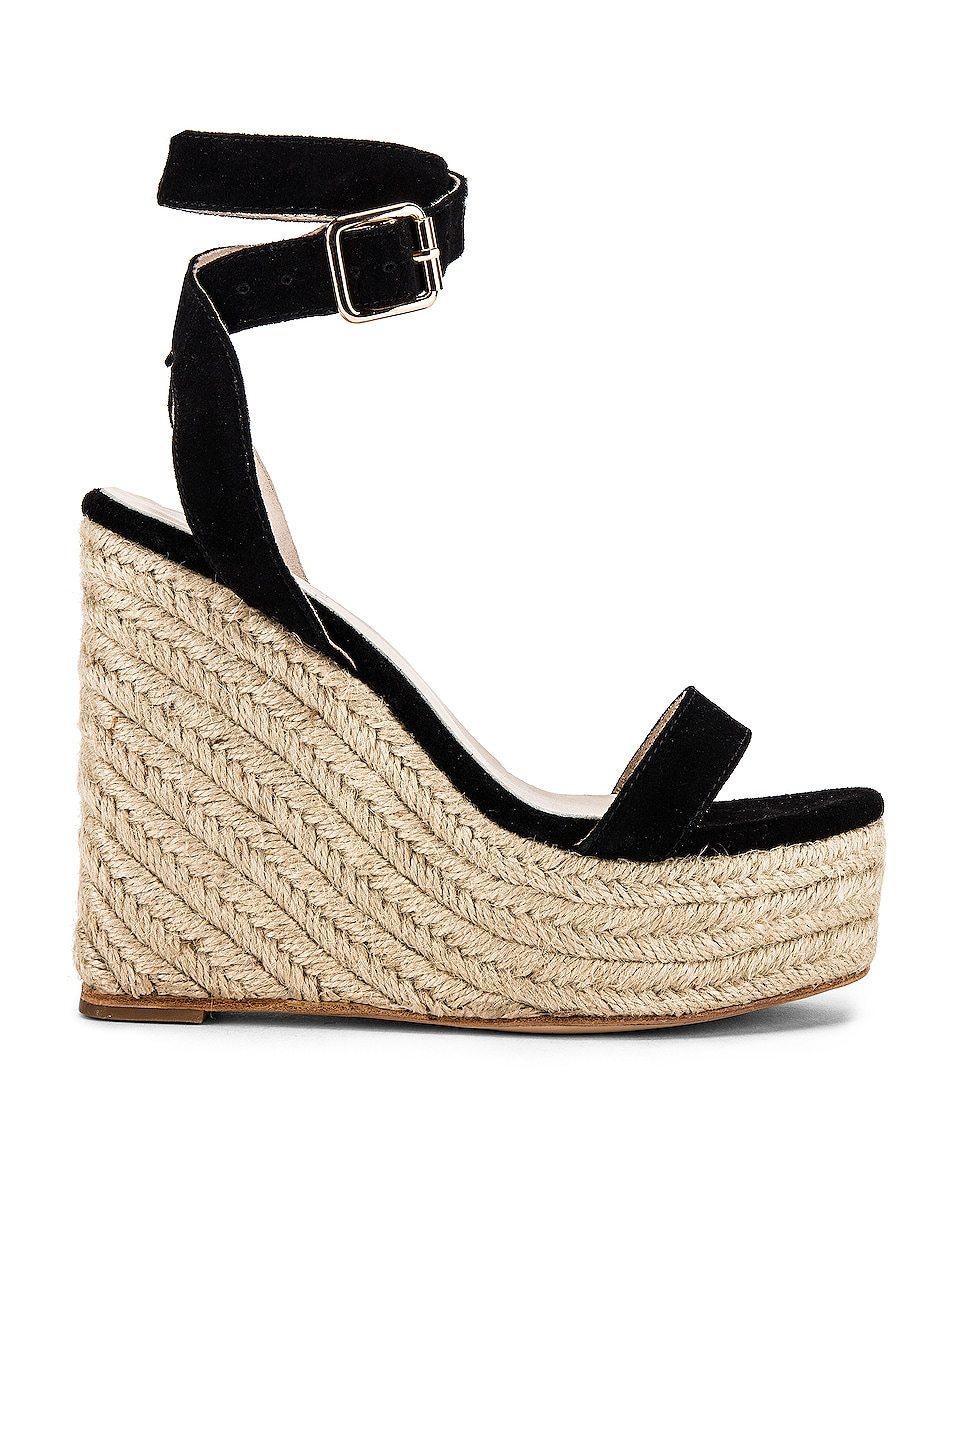 RAYE Tulum Wedge in Black